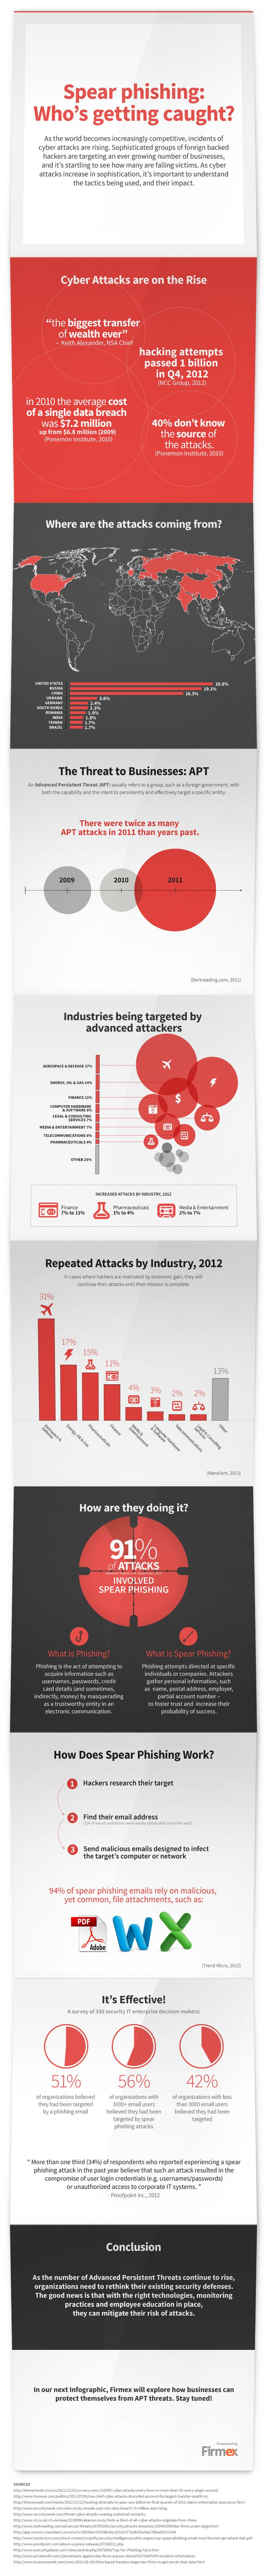 cyber_security-phishing_email-firmex-infographic_1